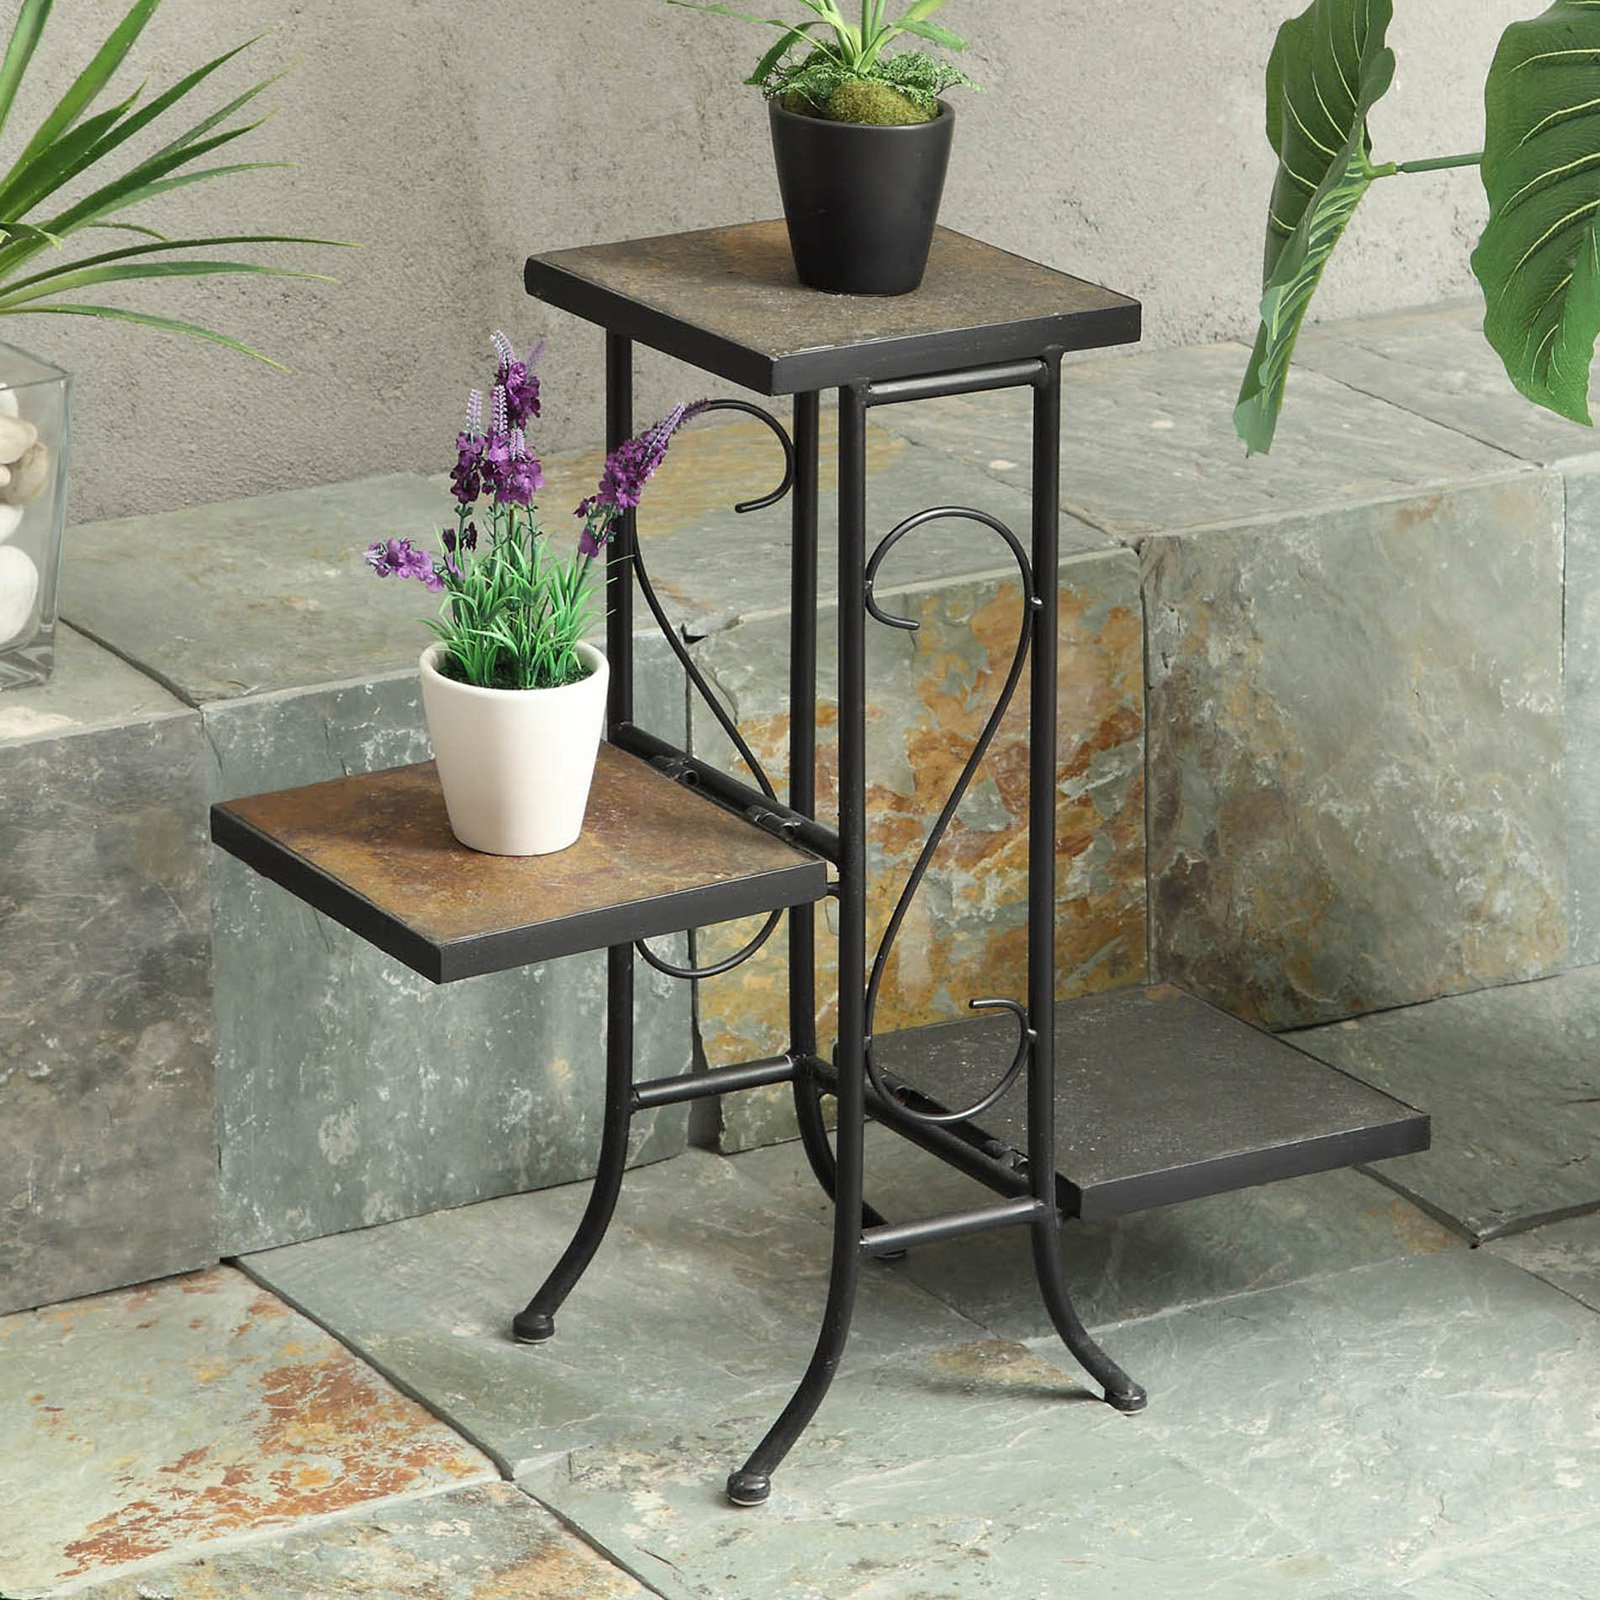 4D Concepts 3 Tier Slate Plant Stand by 4D Concepts